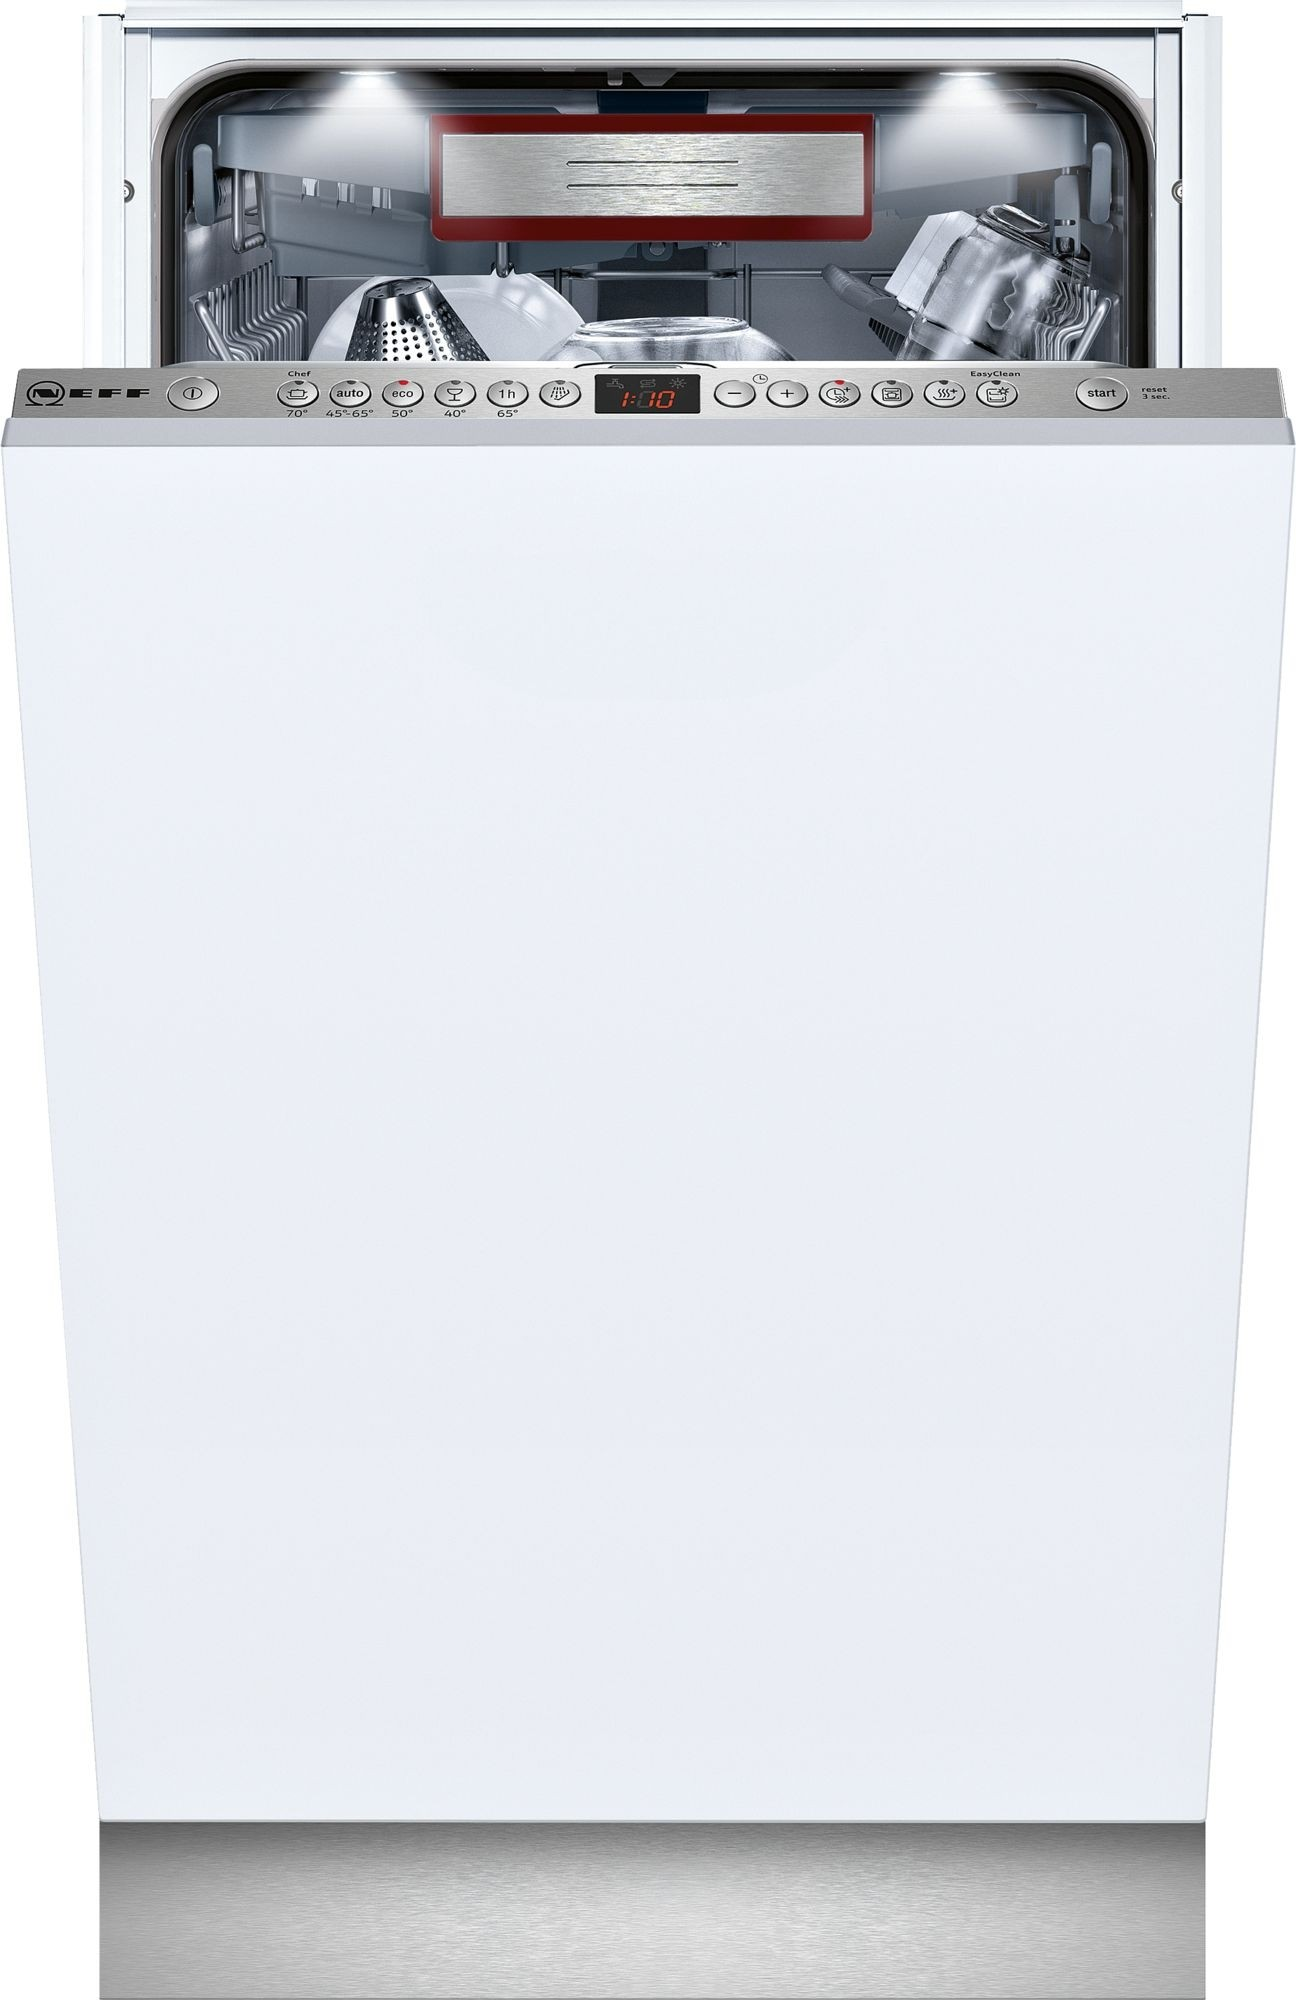 NEFF S586T60D0G Slim Line Dishwasher